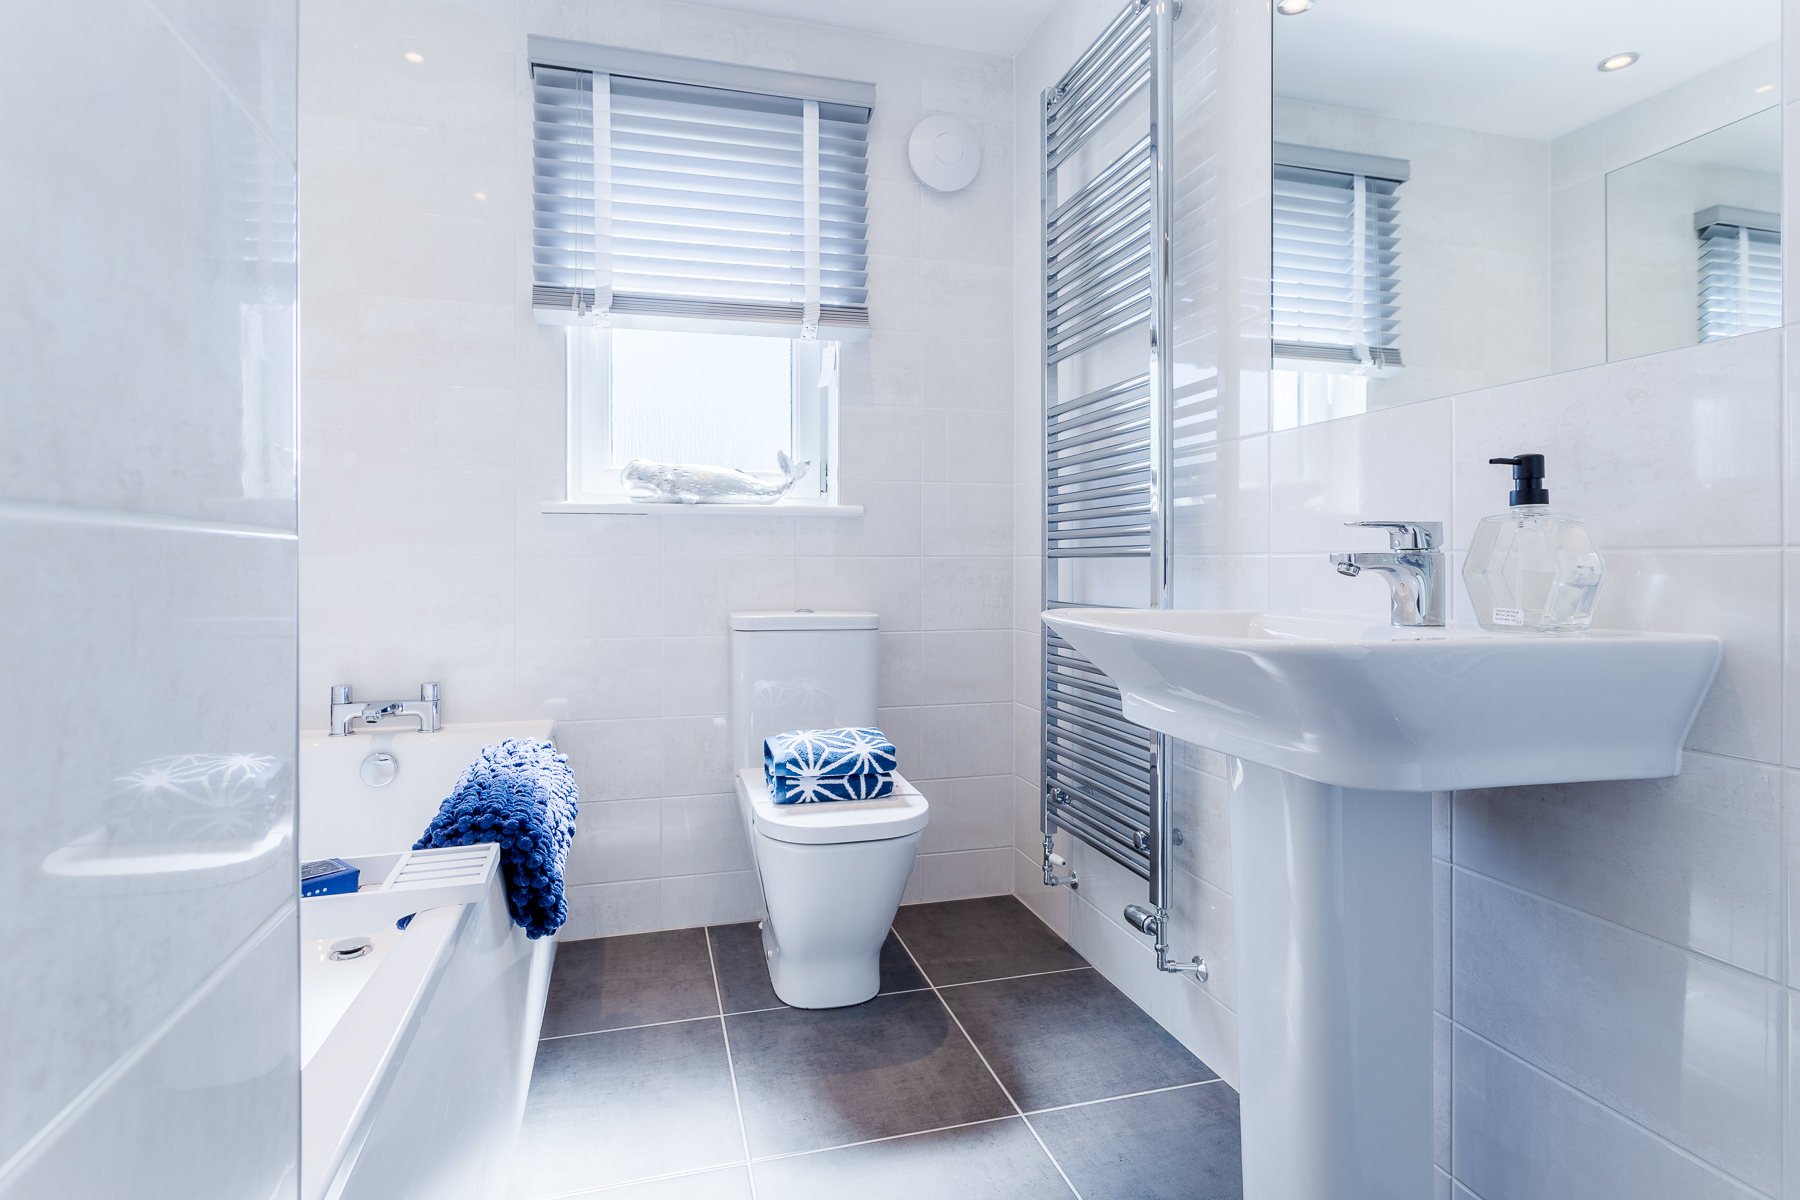 TWES_KinlochGreen_TheStewart_Bathroom_1800x1200